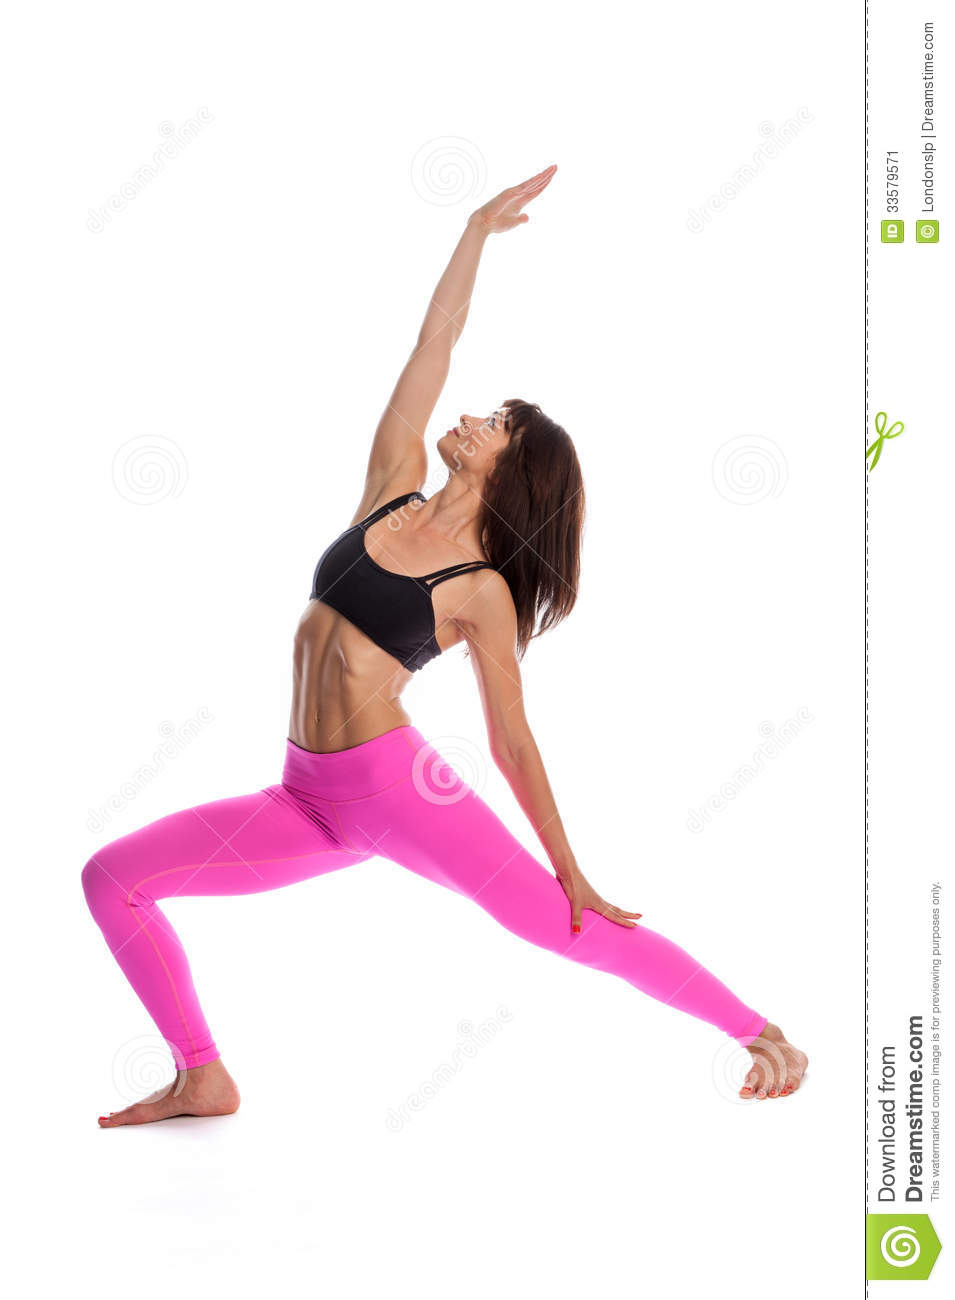 jolie femme dans la pose de yoga position inverse de guerrier image stock image 33579571. Black Bedroom Furniture Sets. Home Design Ideas